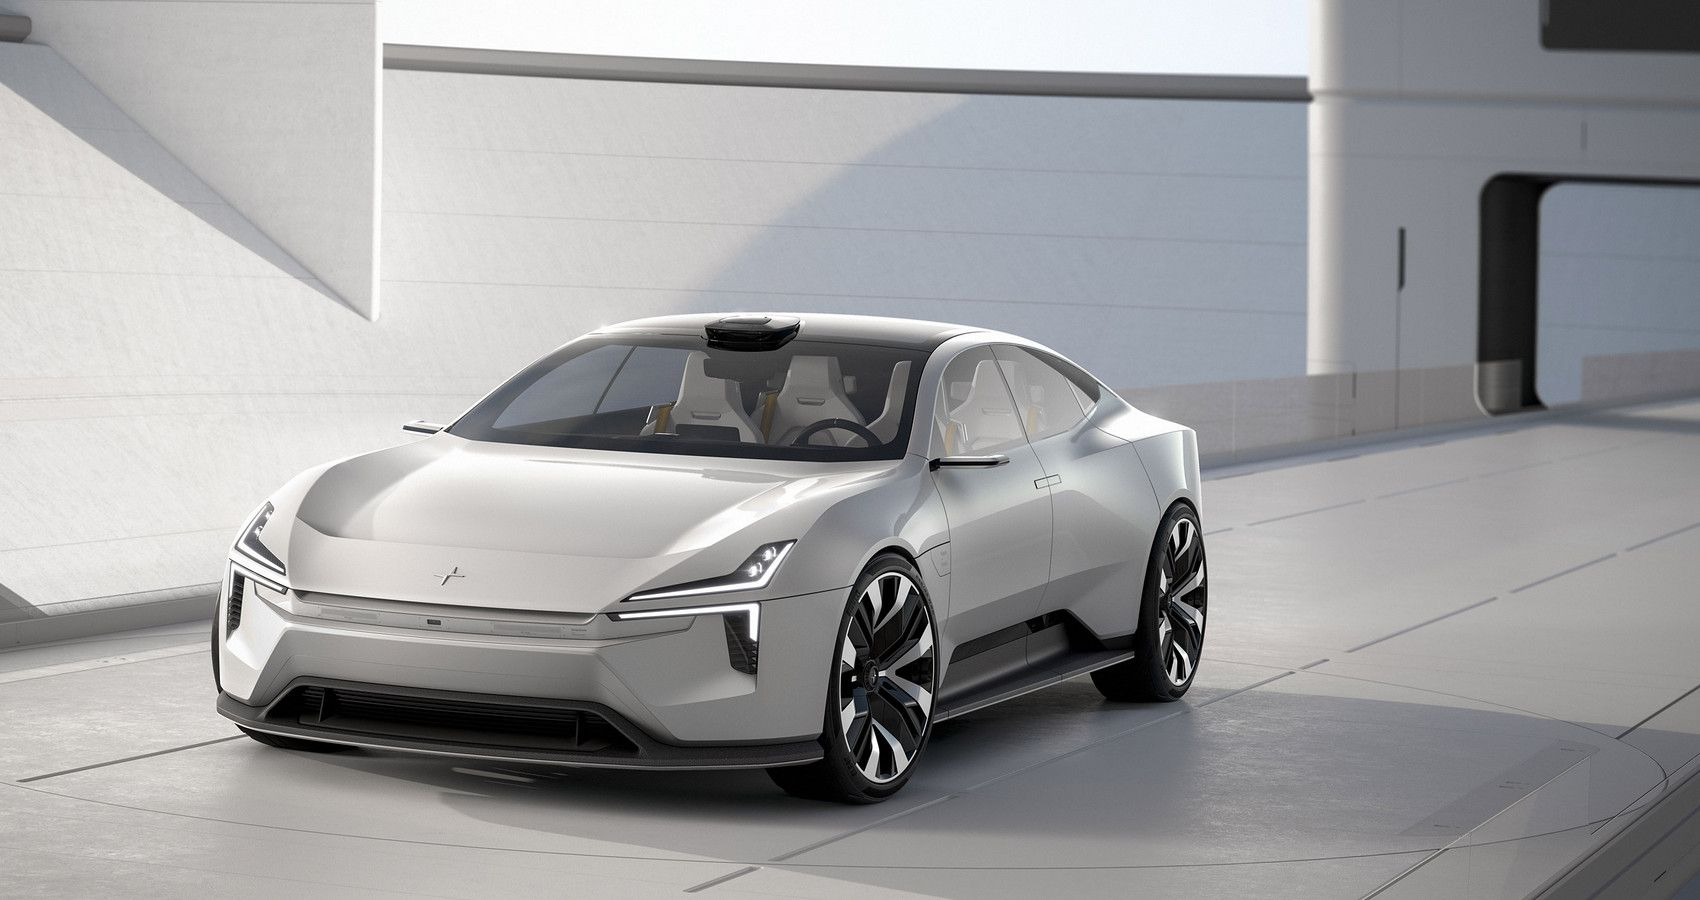 10 New Concept Cars We Hope Will Make It Into Production Soon